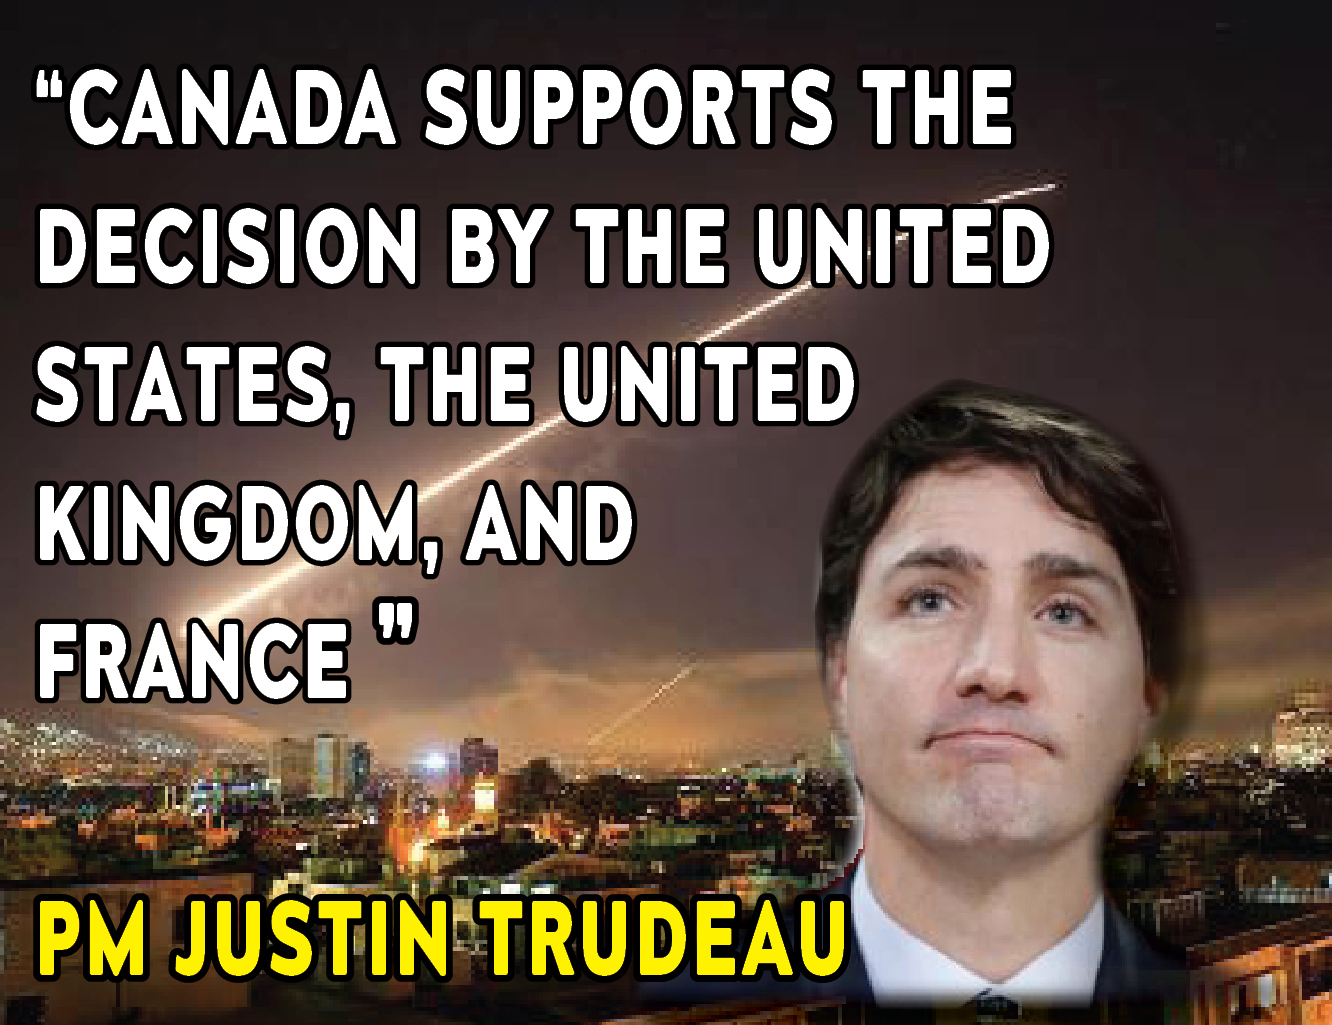 Statement by the Prime Minister Justin Trudeau on airstrikes in Syria